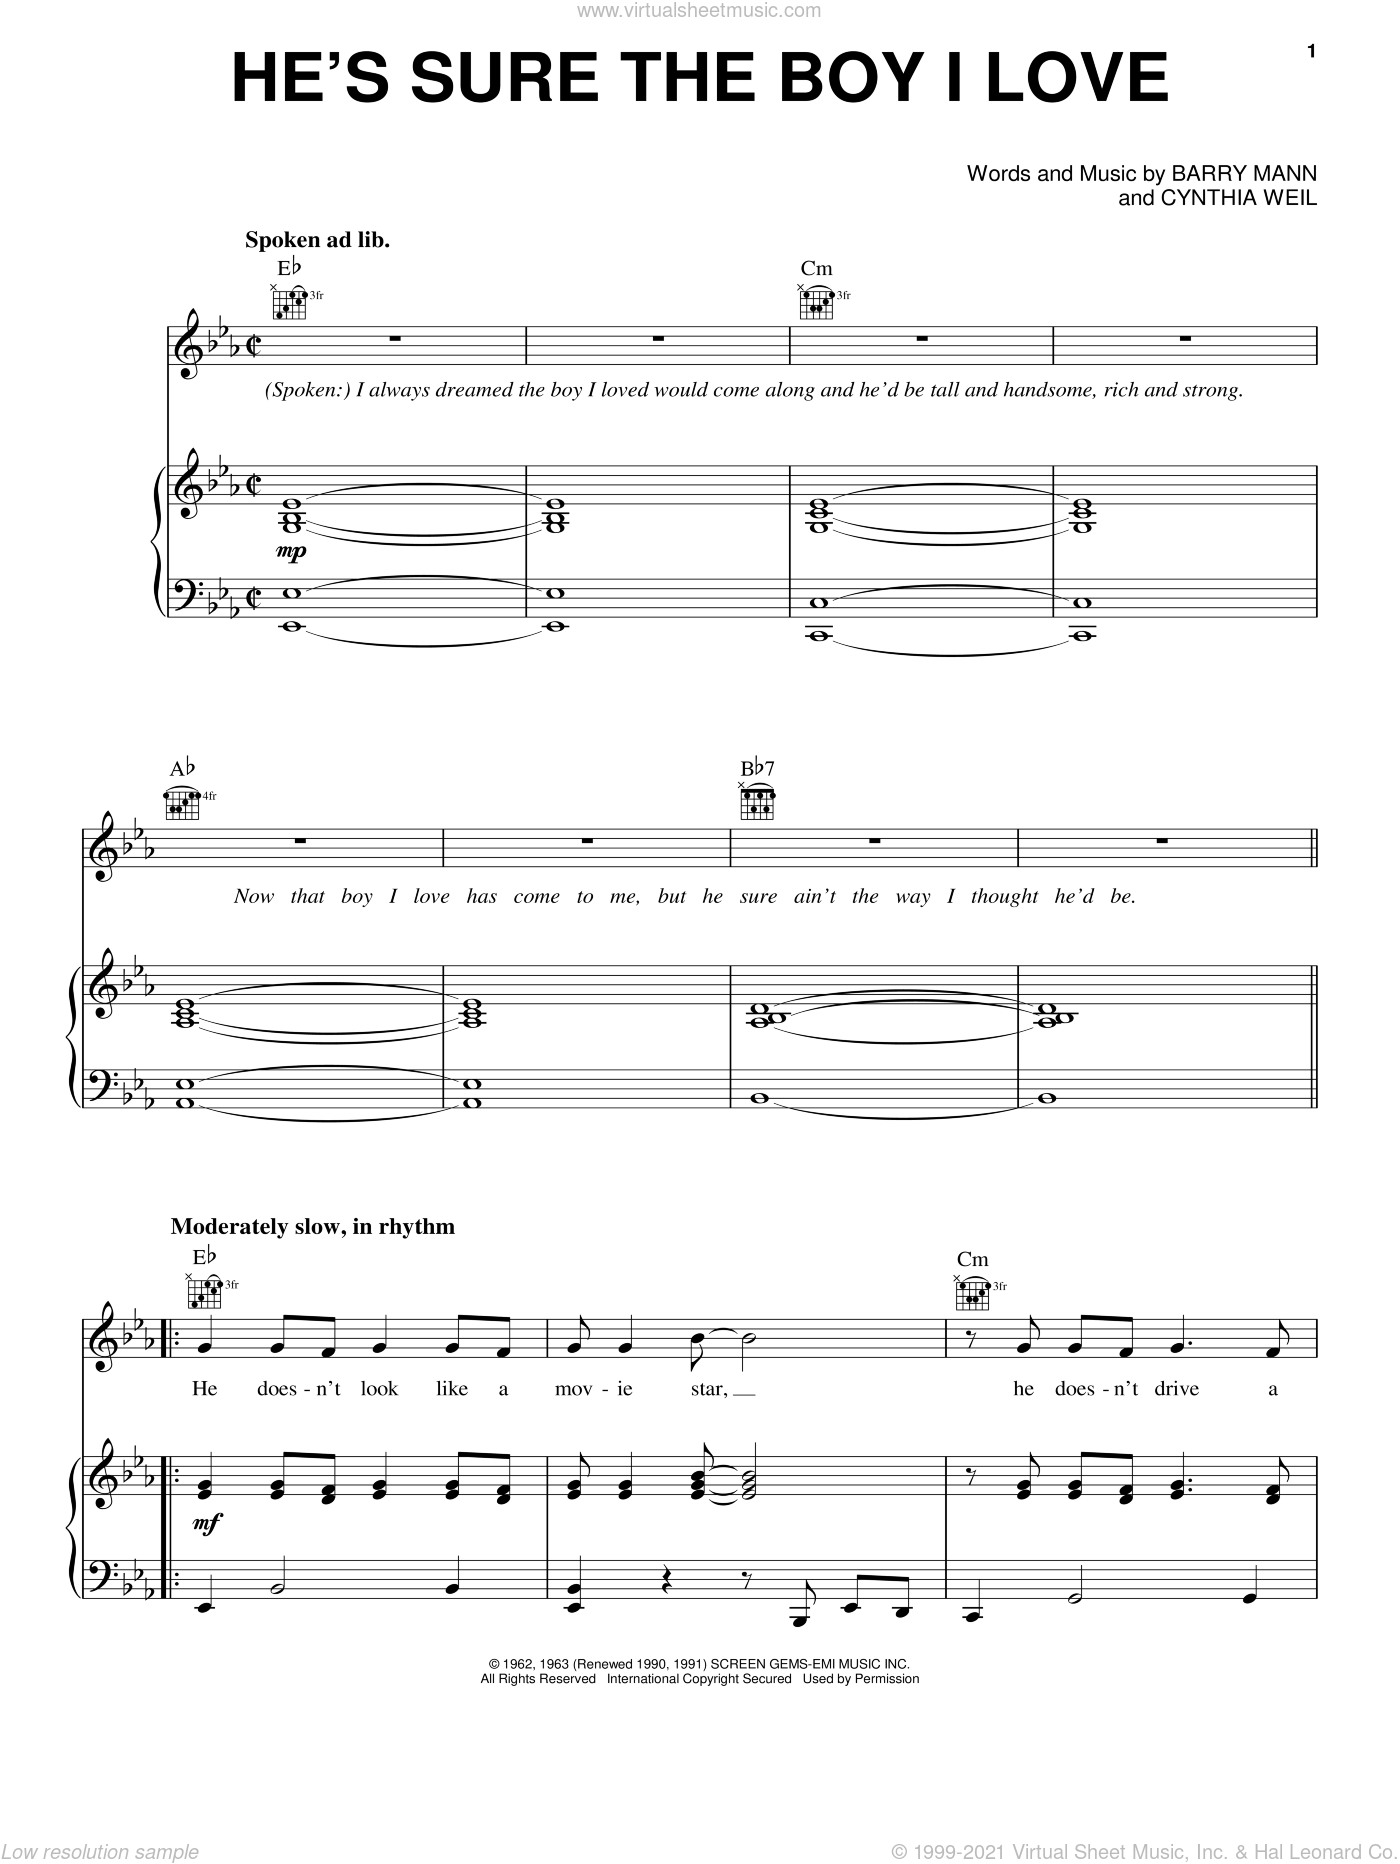 He's Sure The Boy I Love sheet music for voice, piano or guitar by Carole King, The Crystals, Barry Mann and Cynthia Weil, intermediate skill level